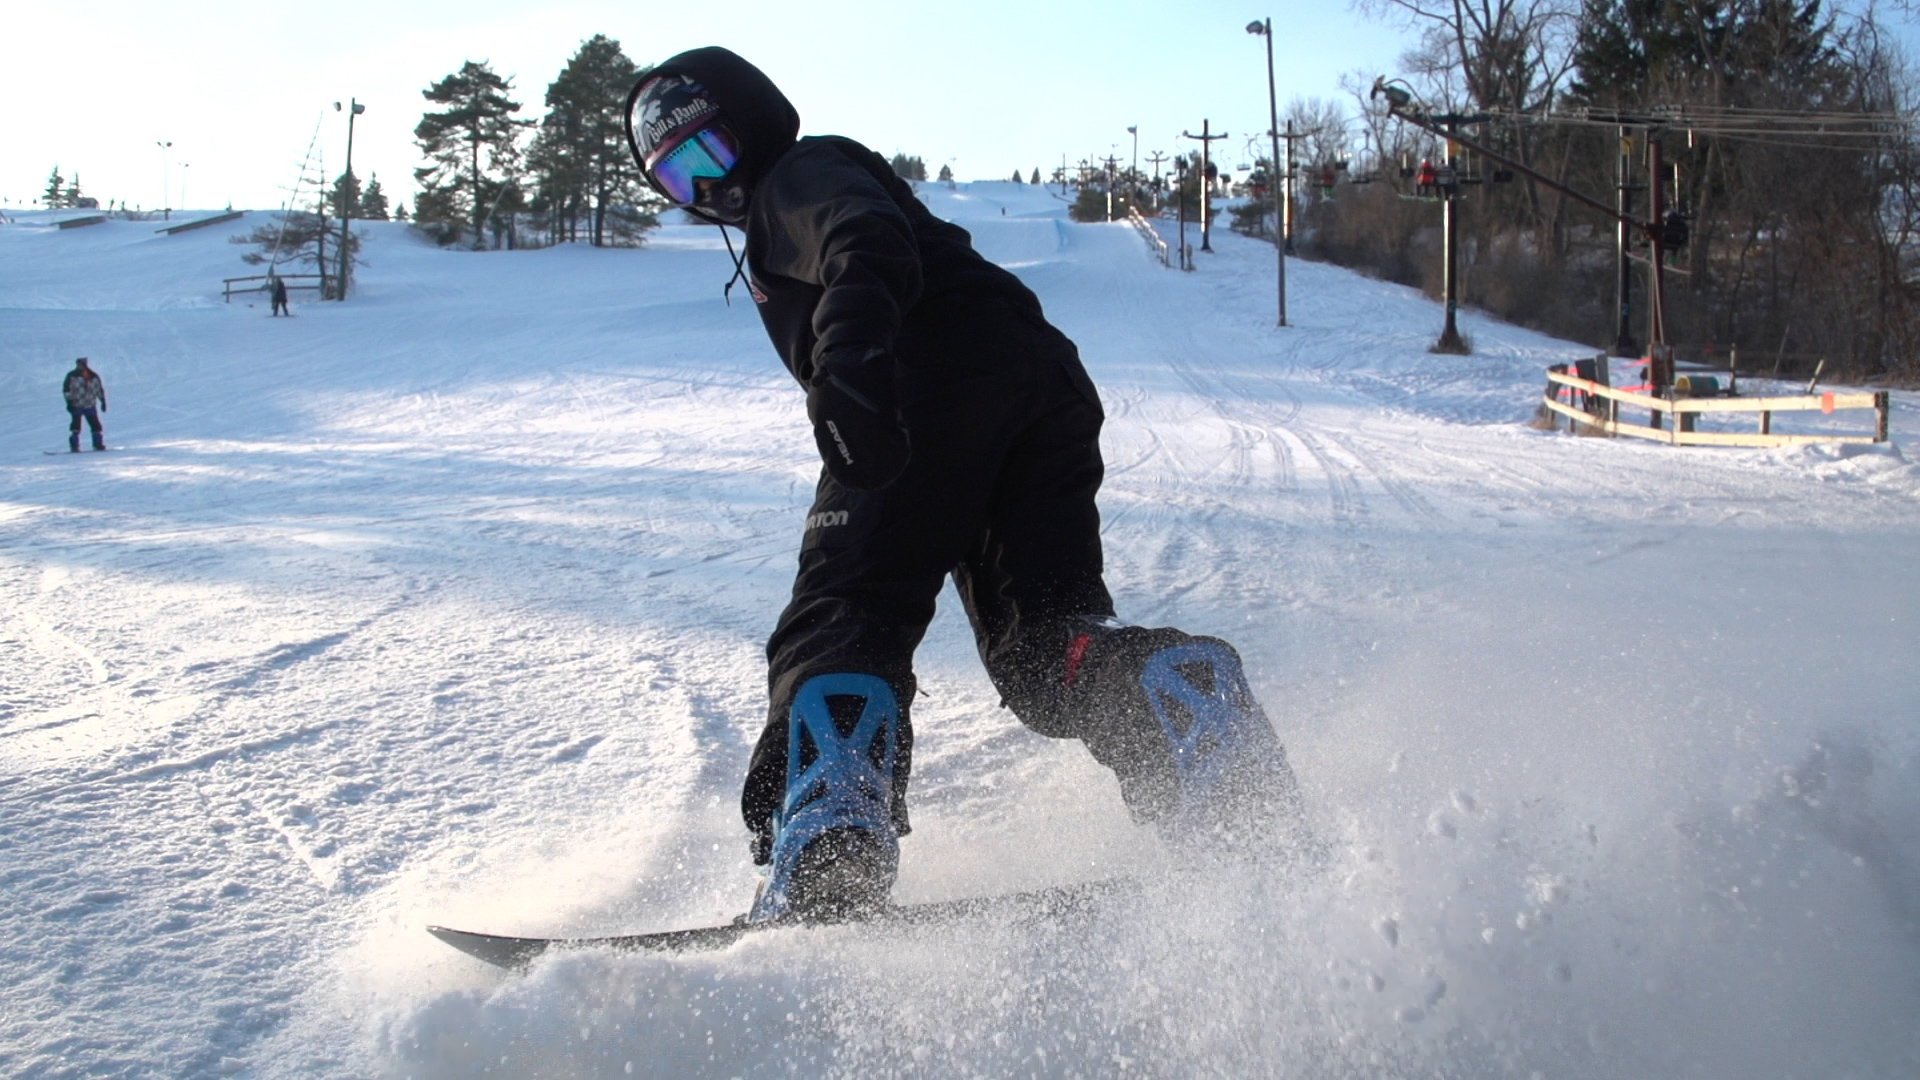 A snowboarder cuts in front of the camera